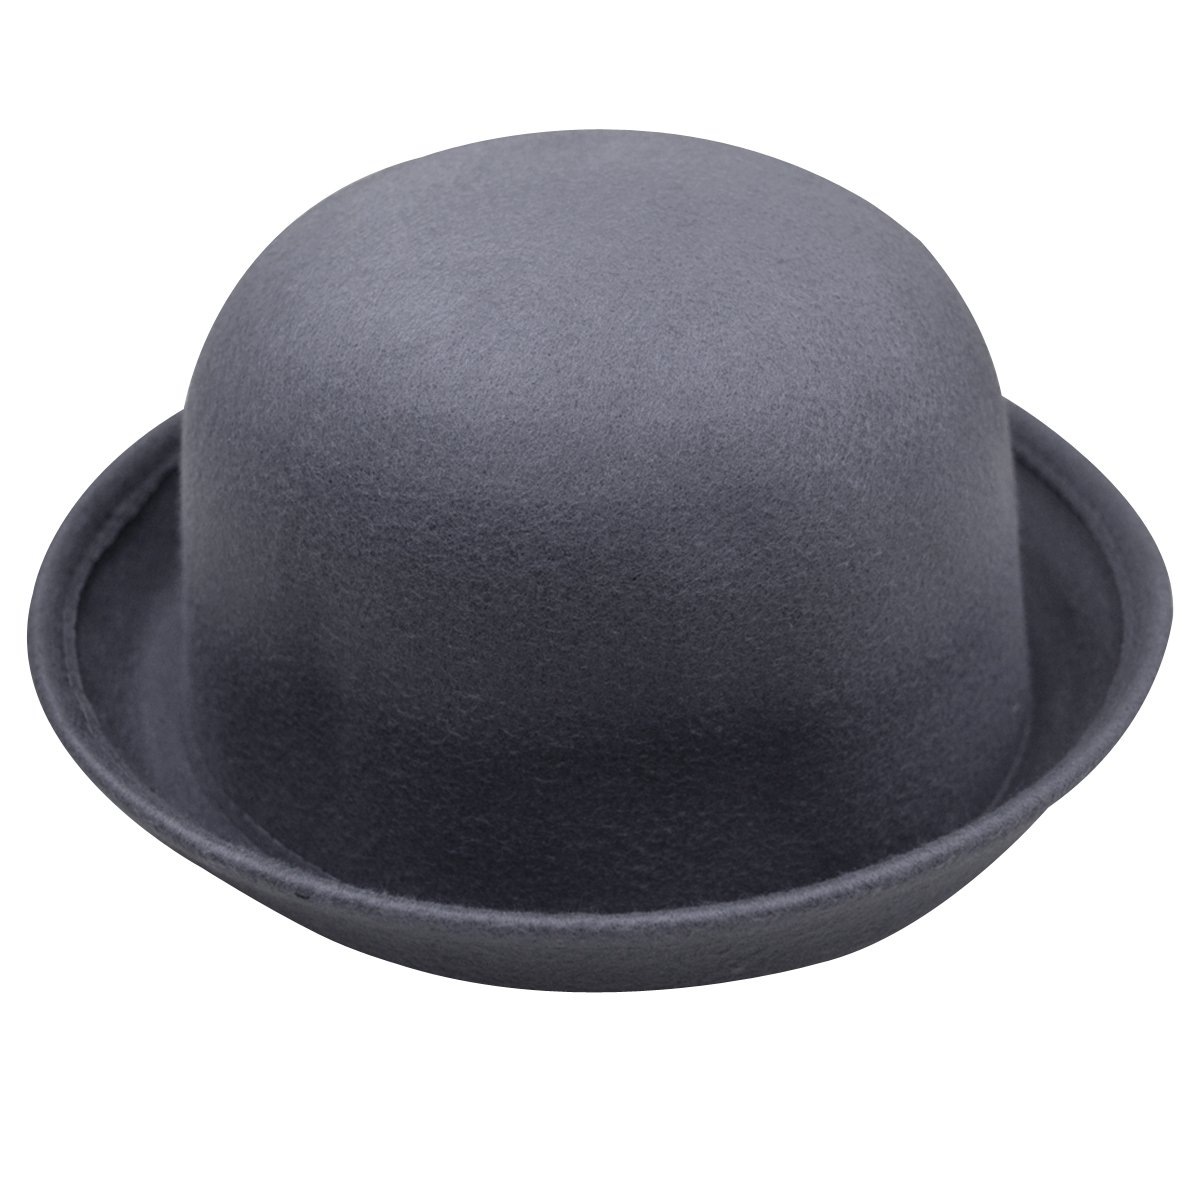 CLARA Women Girls Classic Wool Bowler Hat Round Derby Fedora Bucket Cap